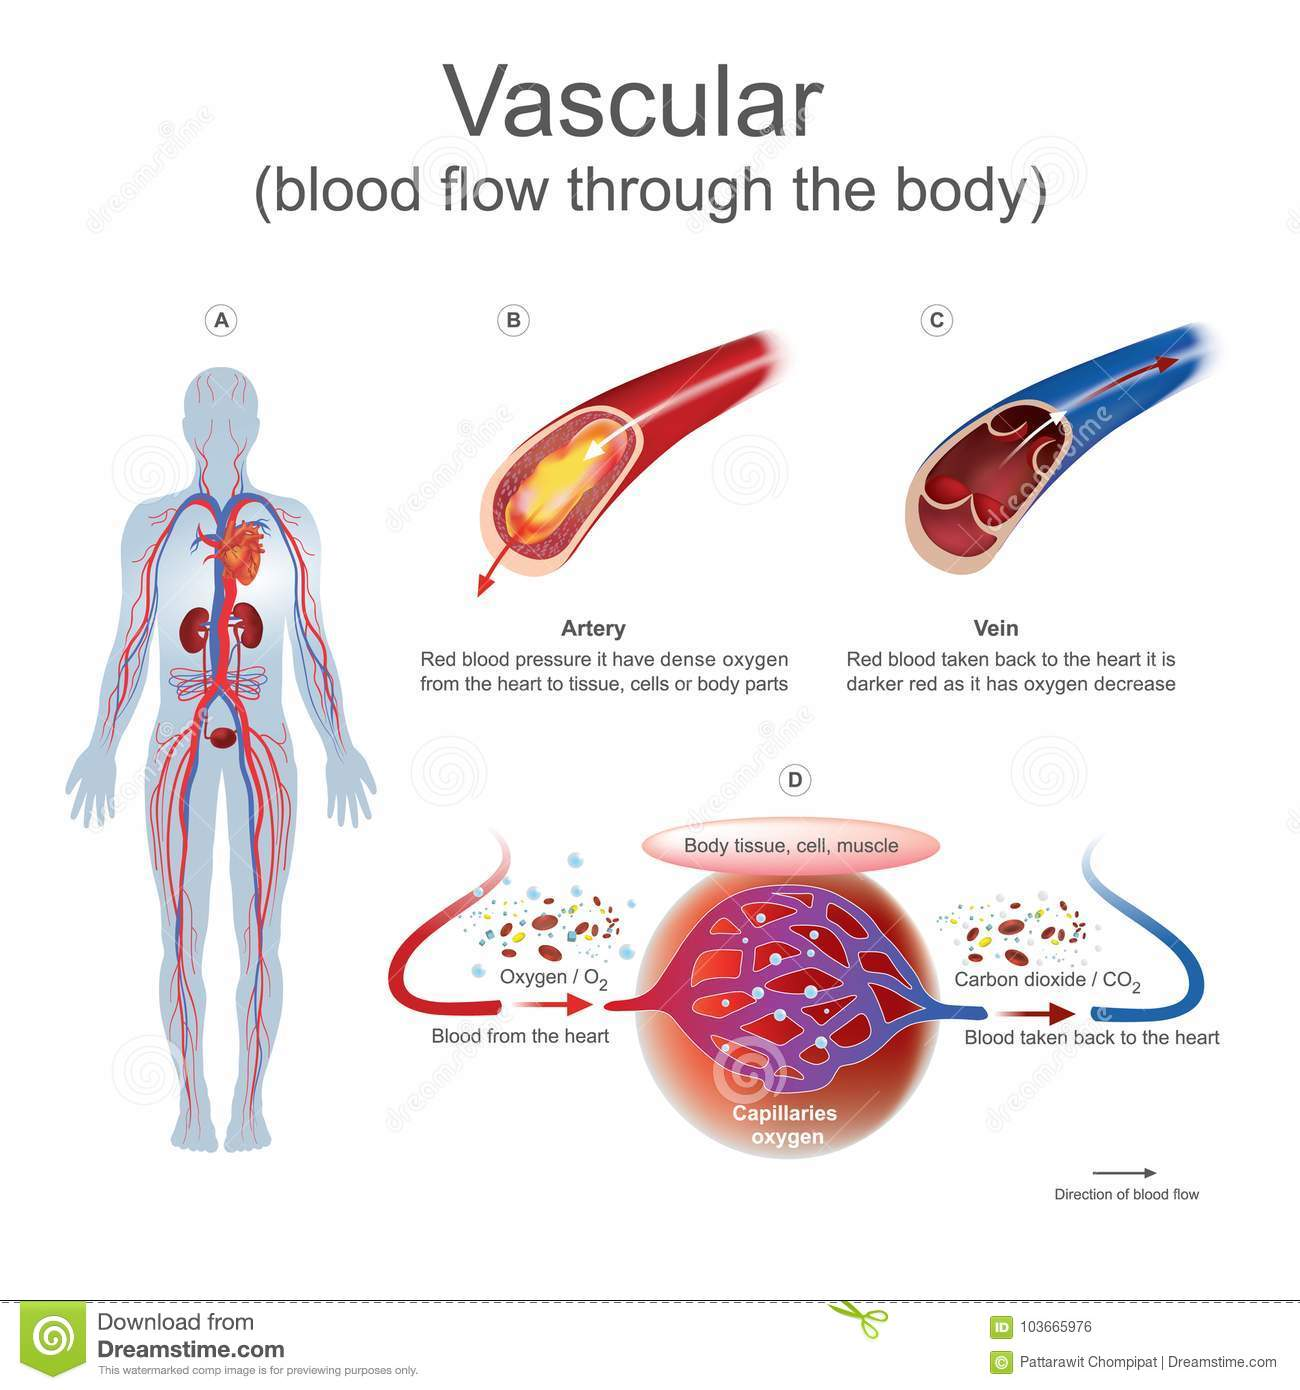 Vascular blood flow through the body stock vector illustration vascular blood flow through the body pooptronica